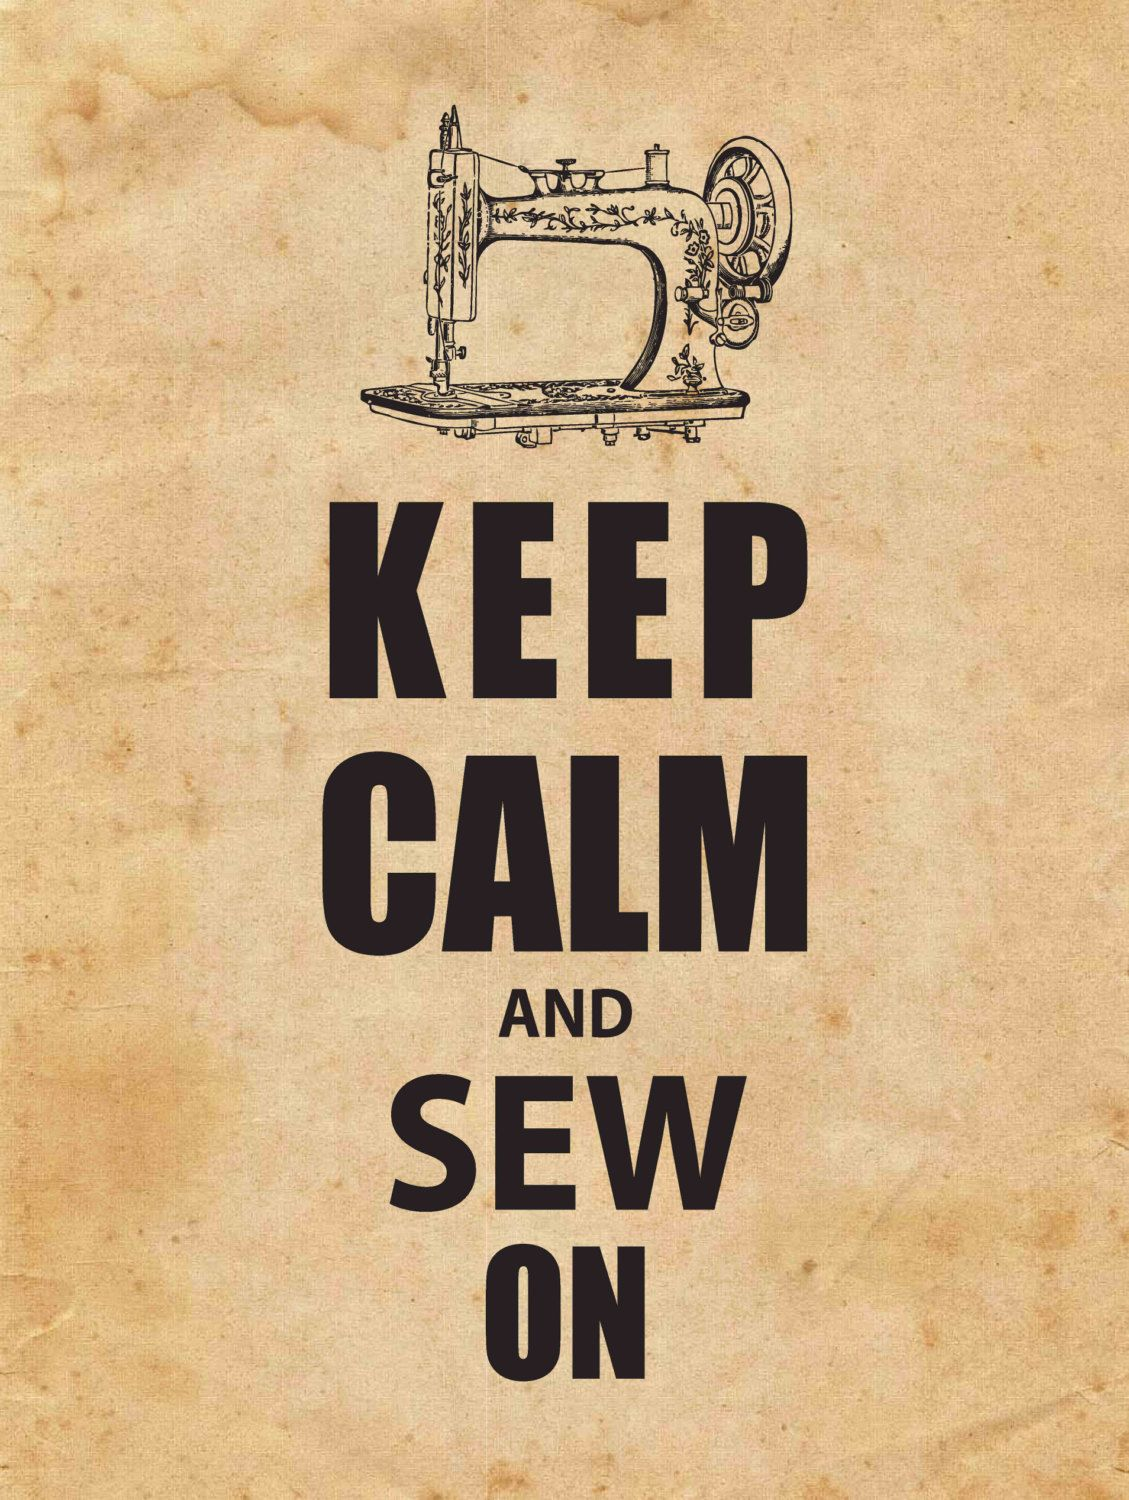 Wall Art - Keep Calm and Sew On @Danielle Lampert Lampert Fulton ...